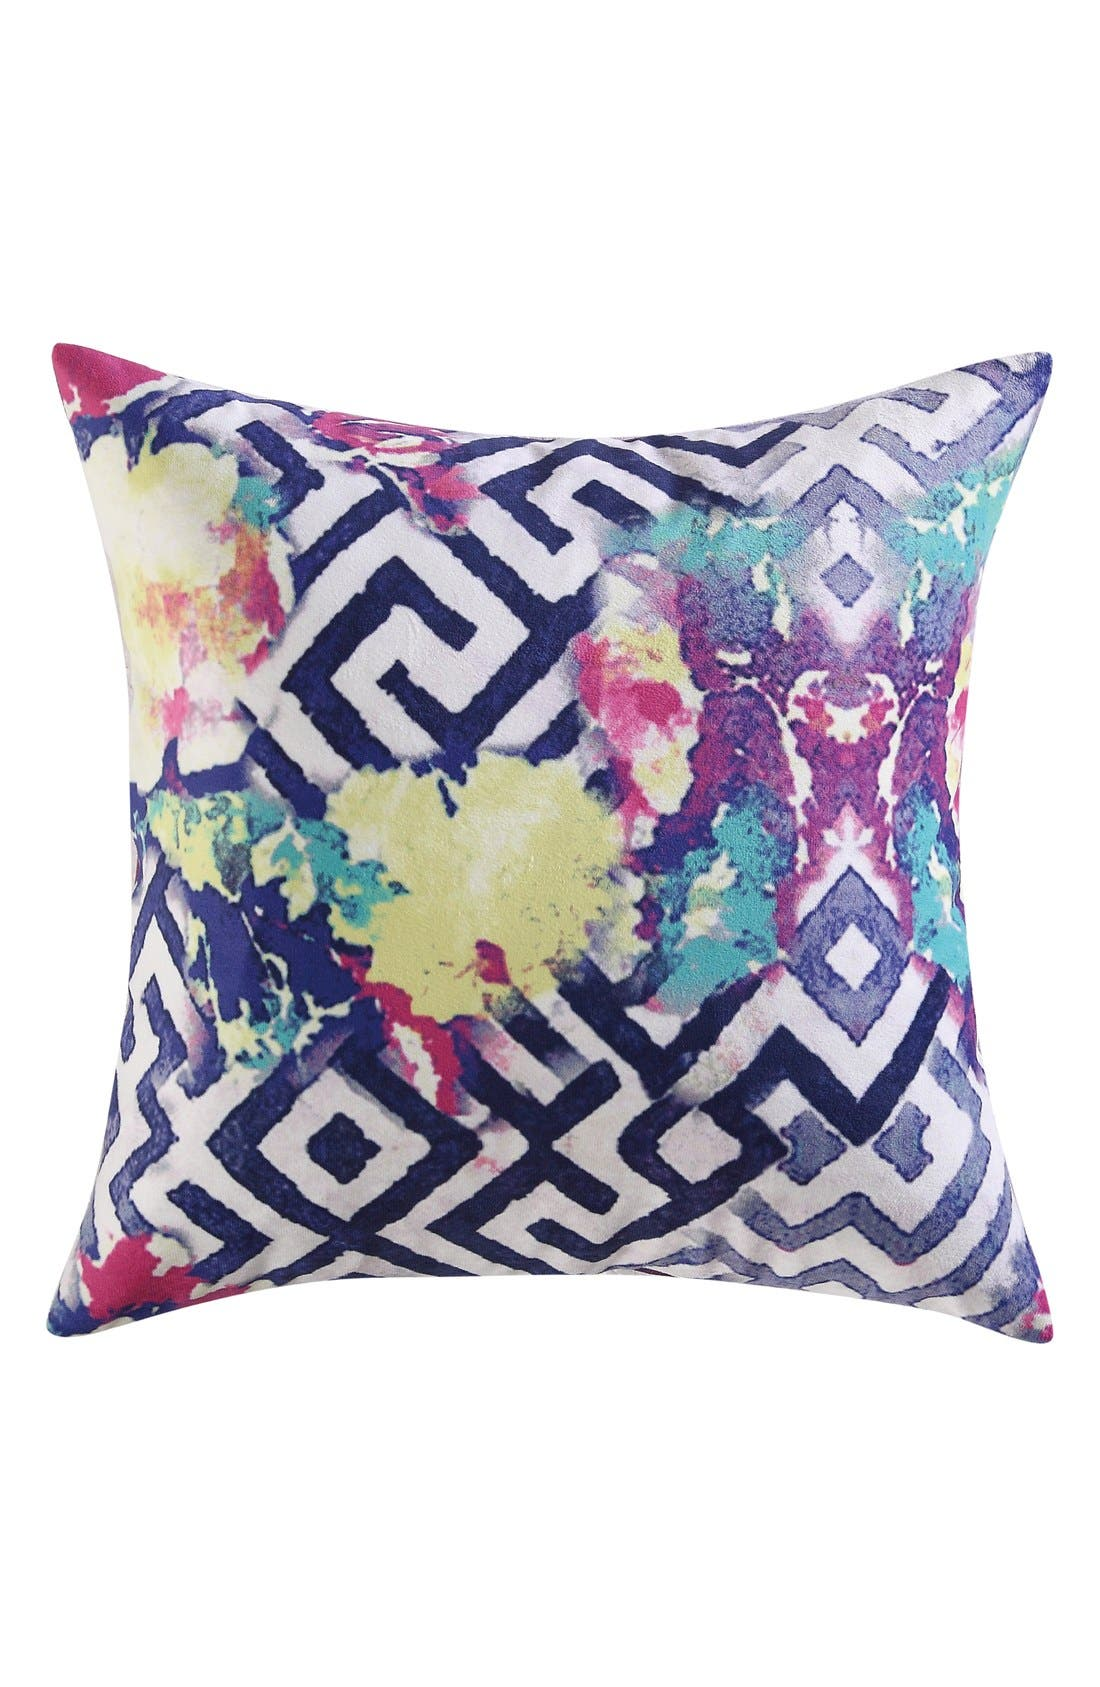 POETIC WANDERLUST,                             Tracy Porter<sup>®</sup> For Poetic Wanderlust<sup>®</sup> 'Florabella' Velvet Pillow,                             Main thumbnail 1, color,                             440